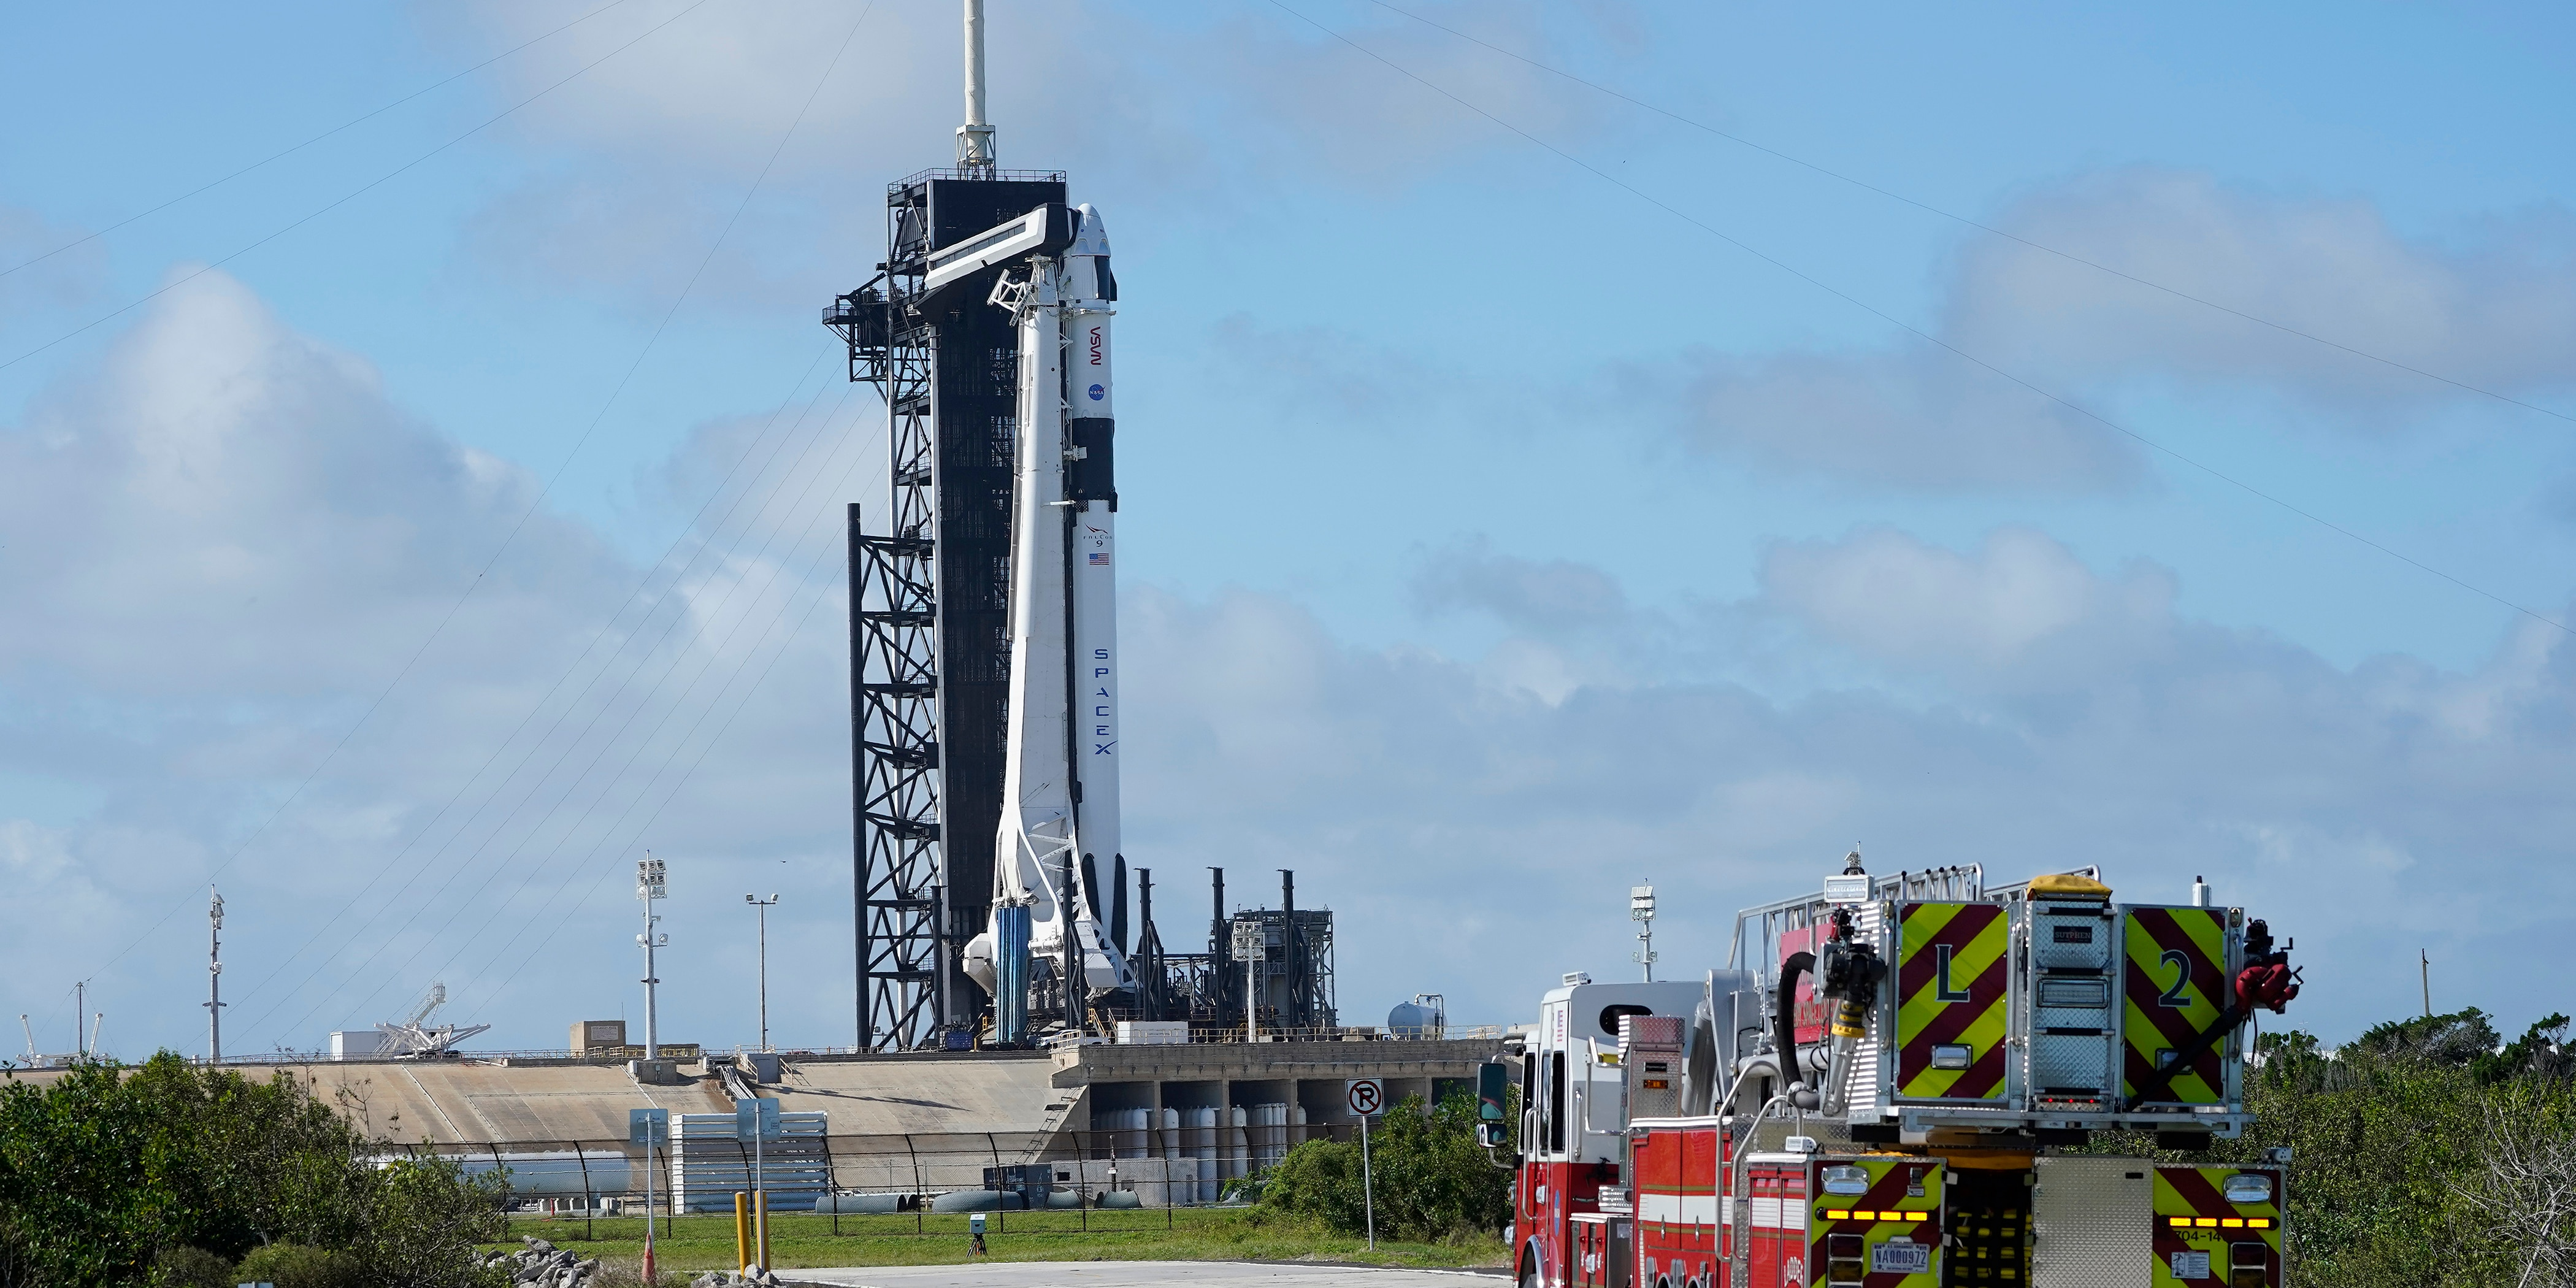 NASA firefighters drive on the road outside the fence near a SpaceX Falcon 9 rocket, with the company's Crew Dragon capsule attached, sits on the launch pad at Launch Complex 39A Friday, Nov. 13, 2020, at the Kennedy Space Center in Cape Canaveral, Fla.